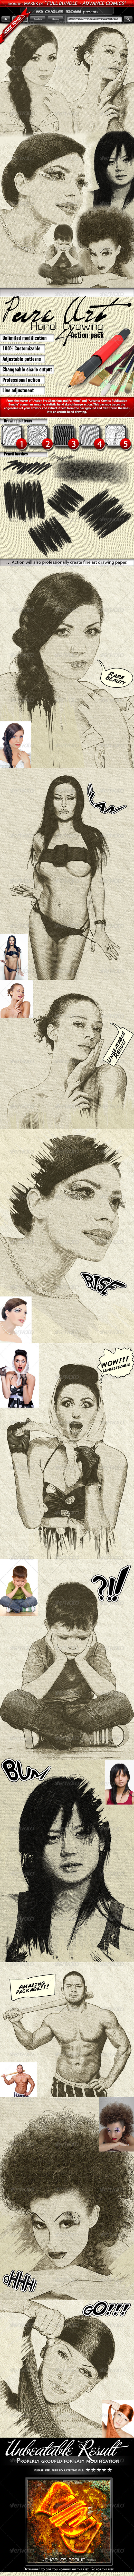 GraphicRiver Pure Art Hand Drawing 4 Fine Art 4408202